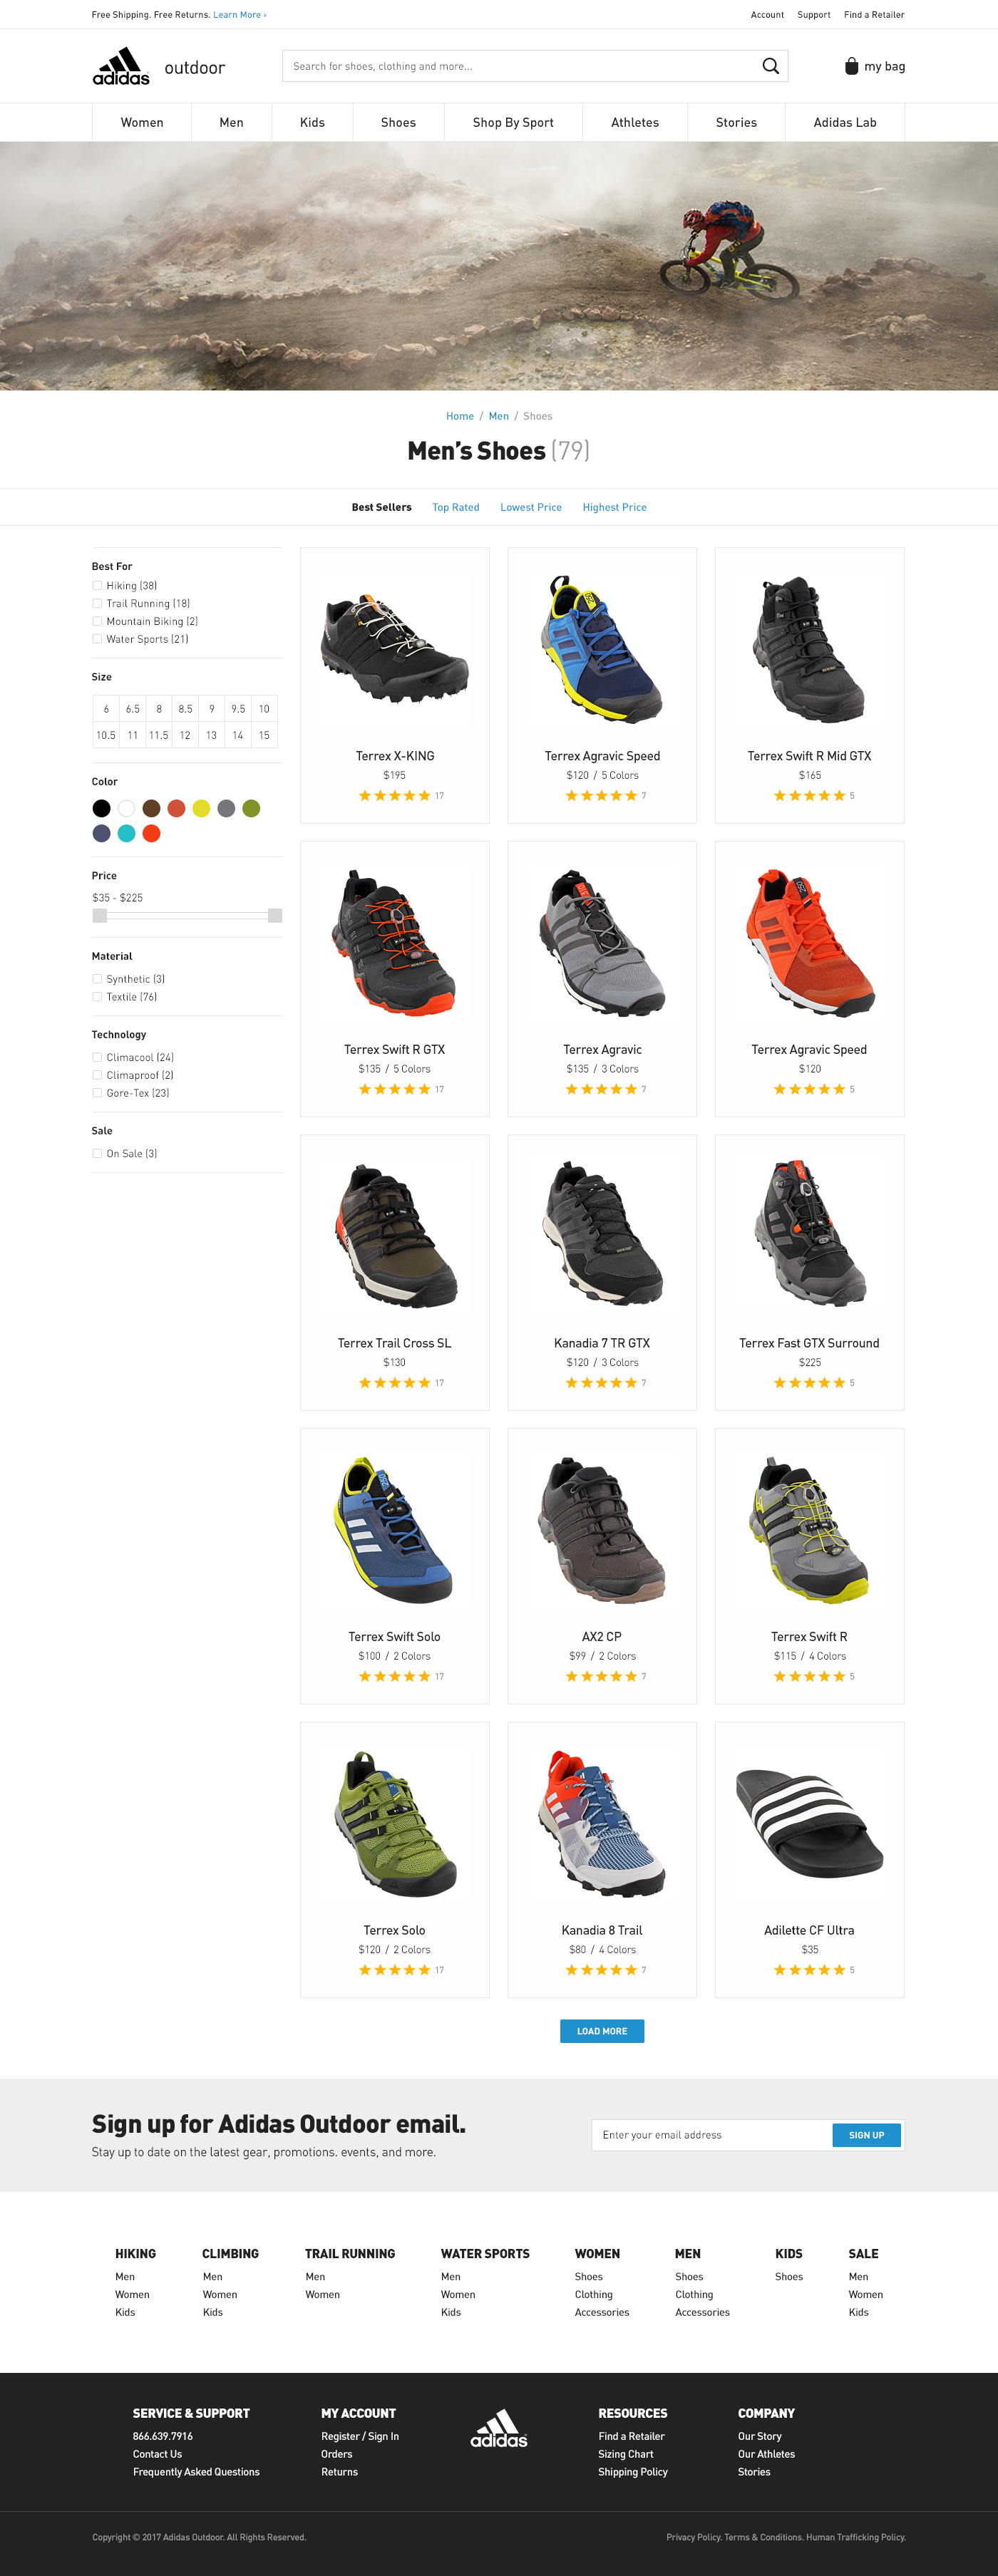 Product Category: Men's Shoes